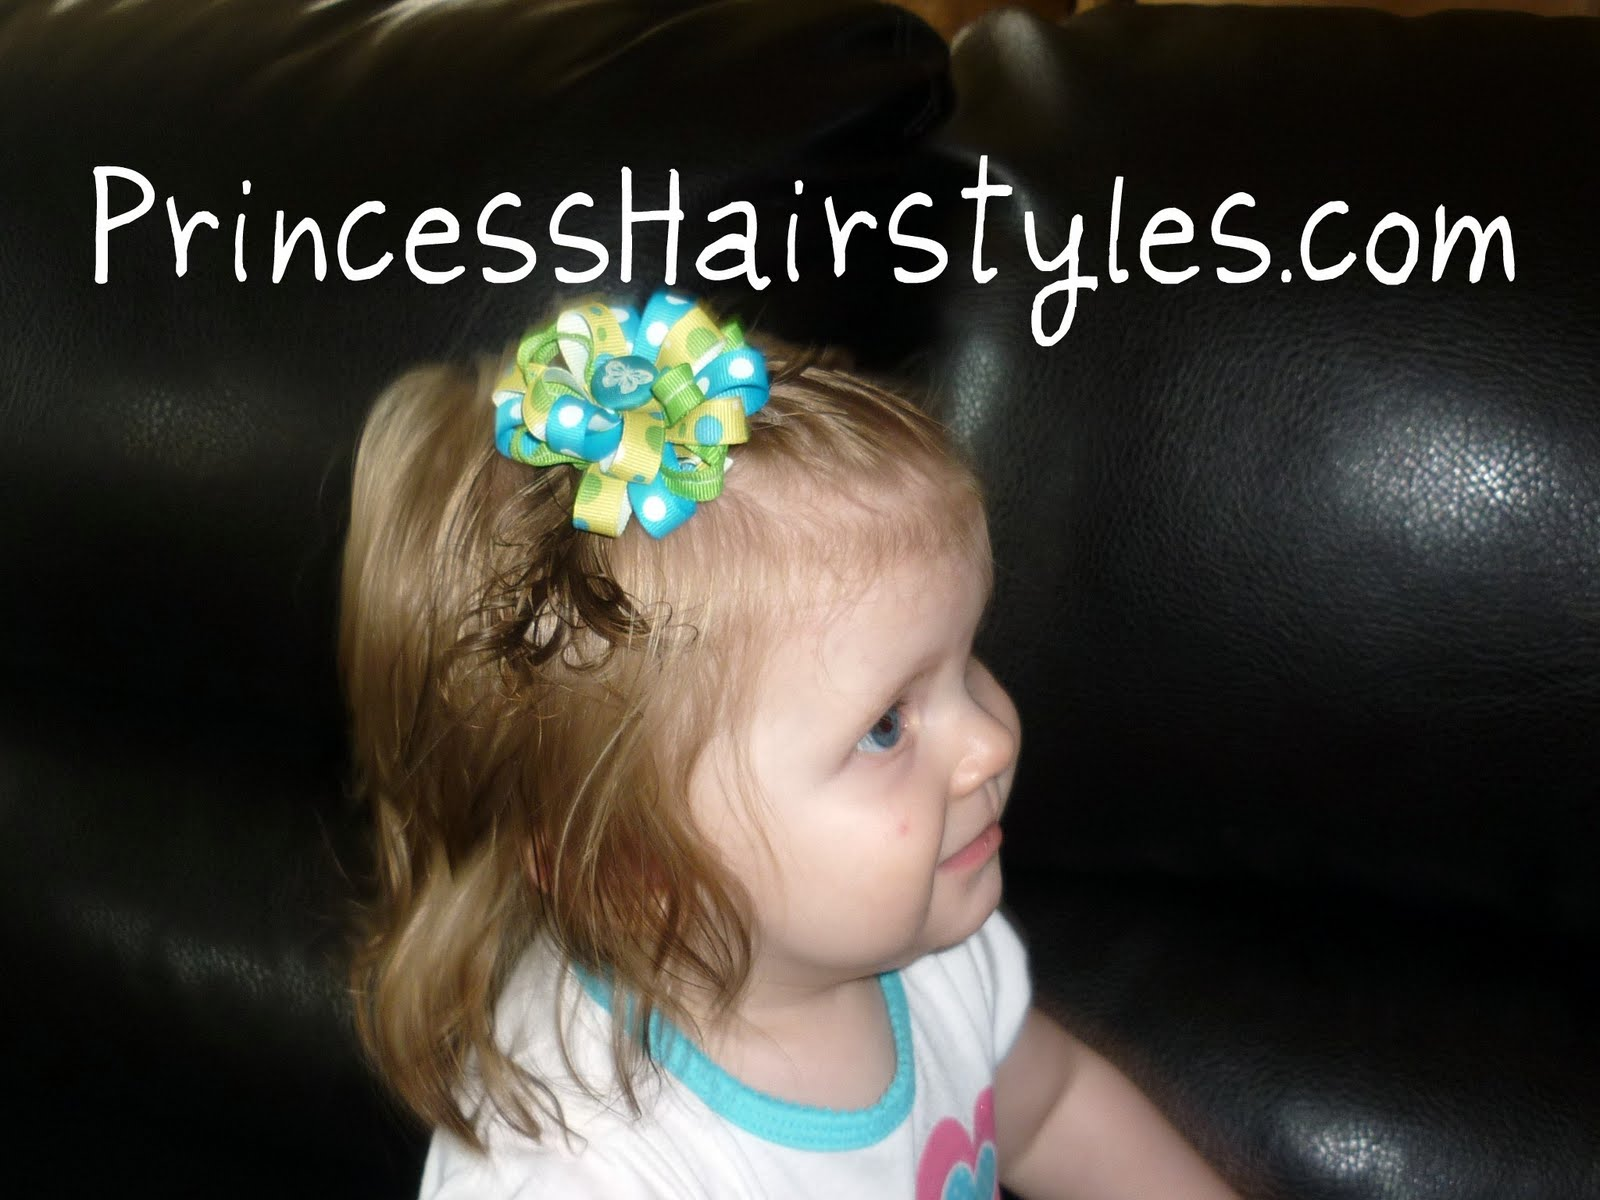 African French Braid Hairstyles http://www.princesshairstyles.com/2011/05/tiny-french-braids-baby-hairstyles.html